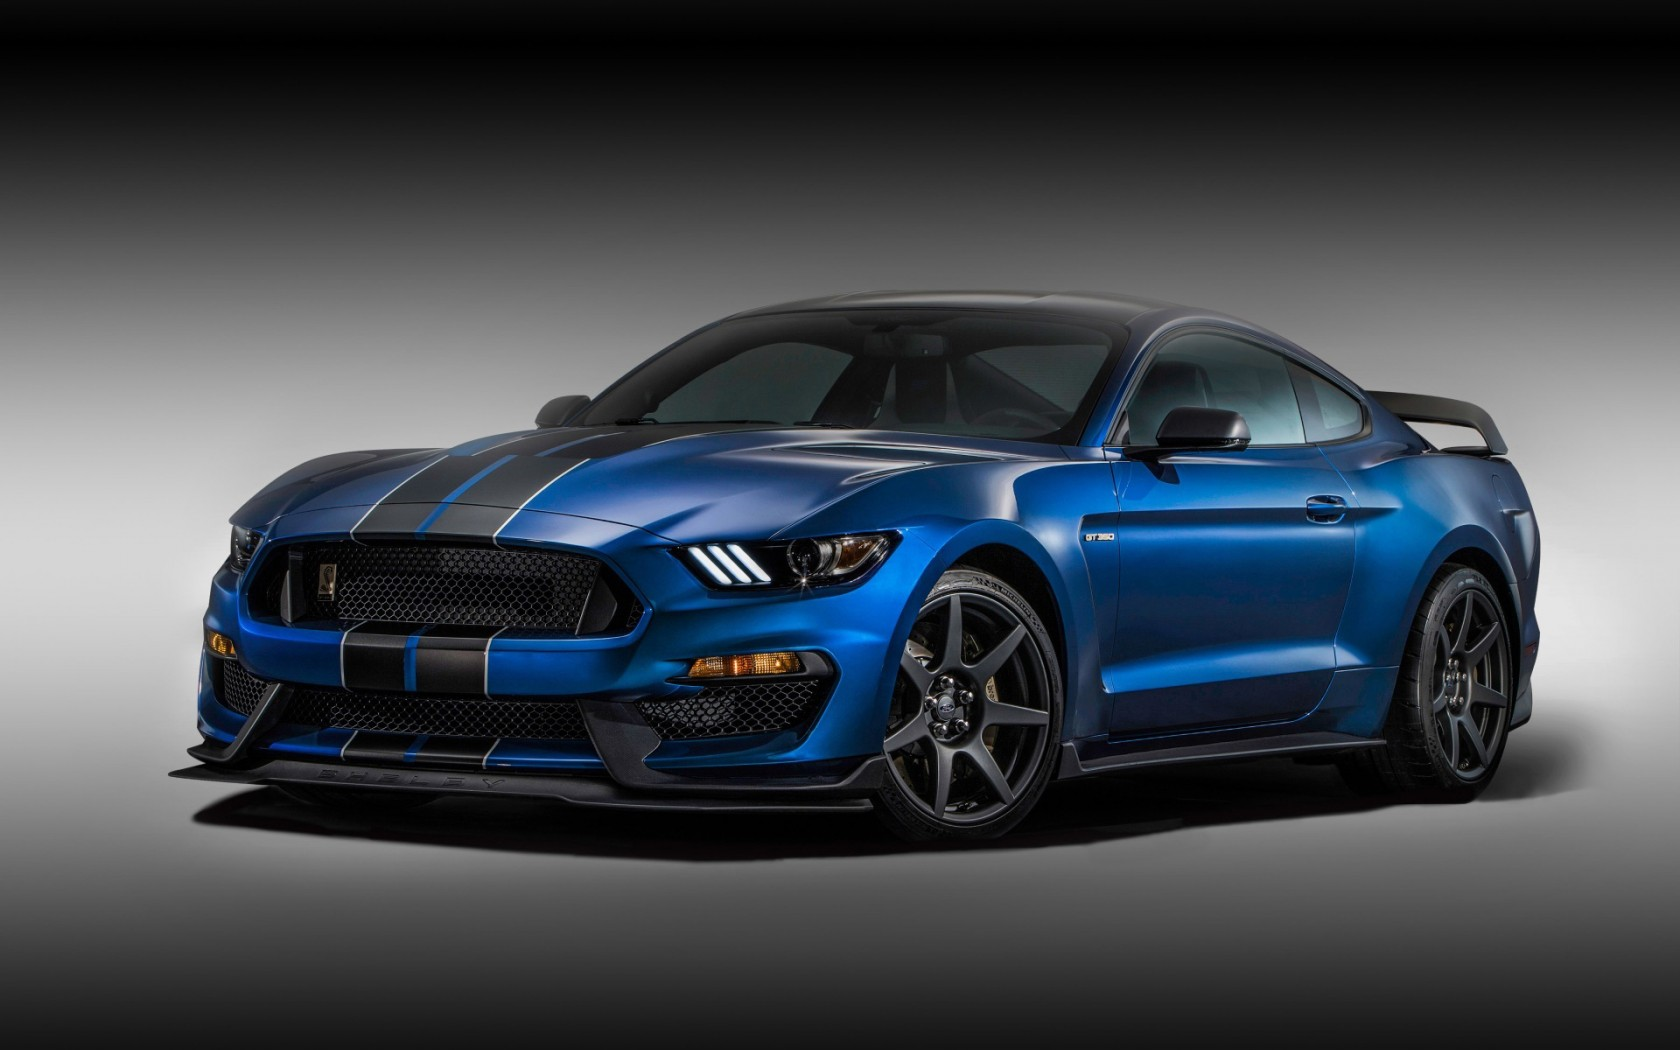 Carbon Wallpaper Iphone X Ford Mustang Shelby Gt350r Wallpaper Hd Car Wallpapers